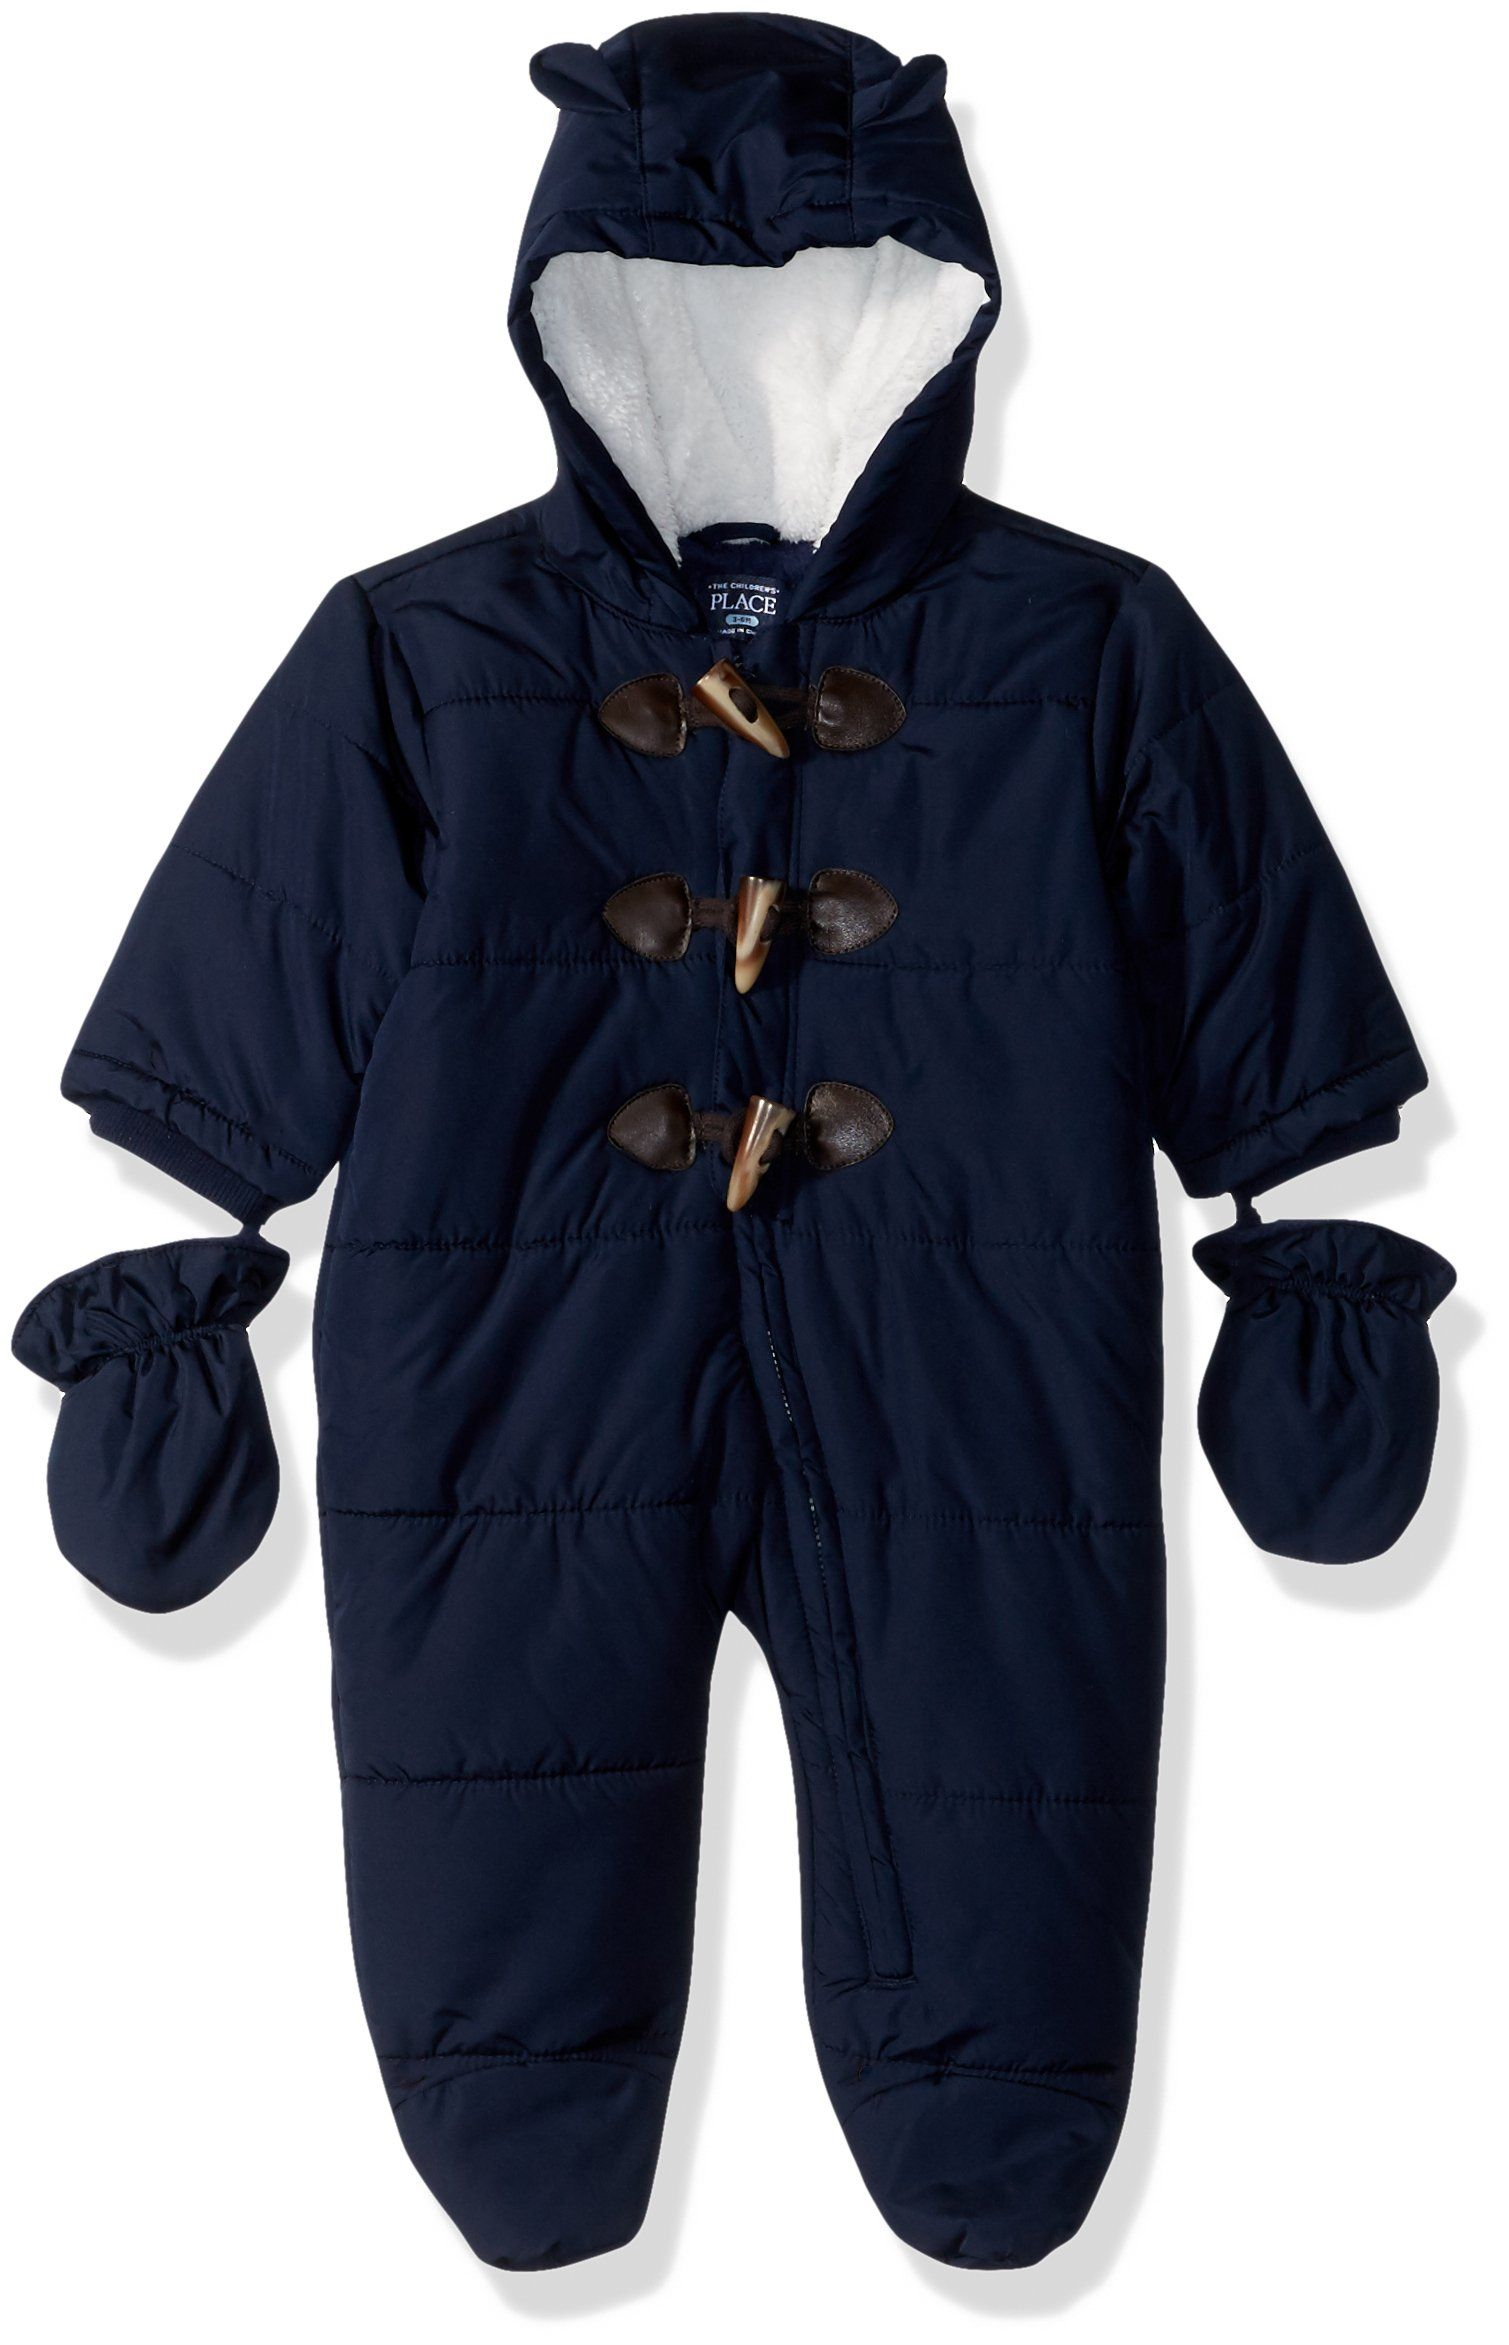 0a756a93e The Children s Place Baby Toggle Snowsuit